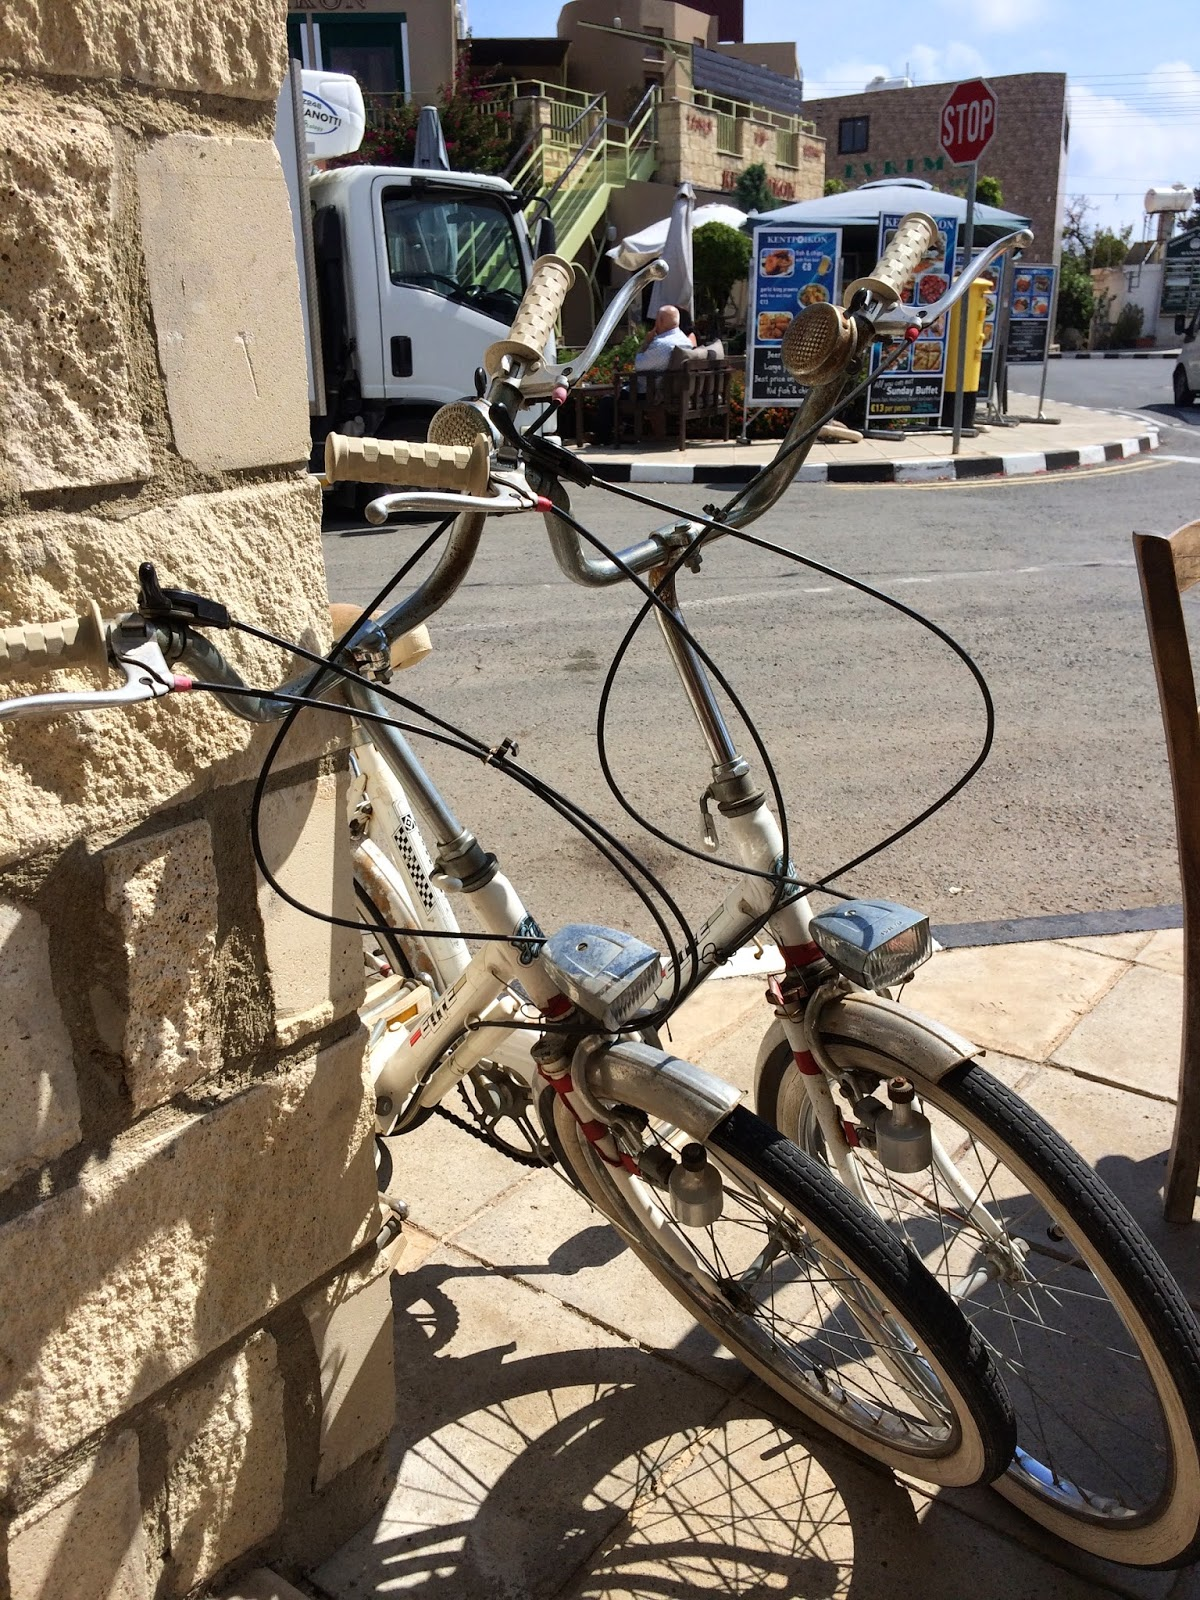 bicycles at Yiannis Klimataria Tavern, Mandria, Cyprus